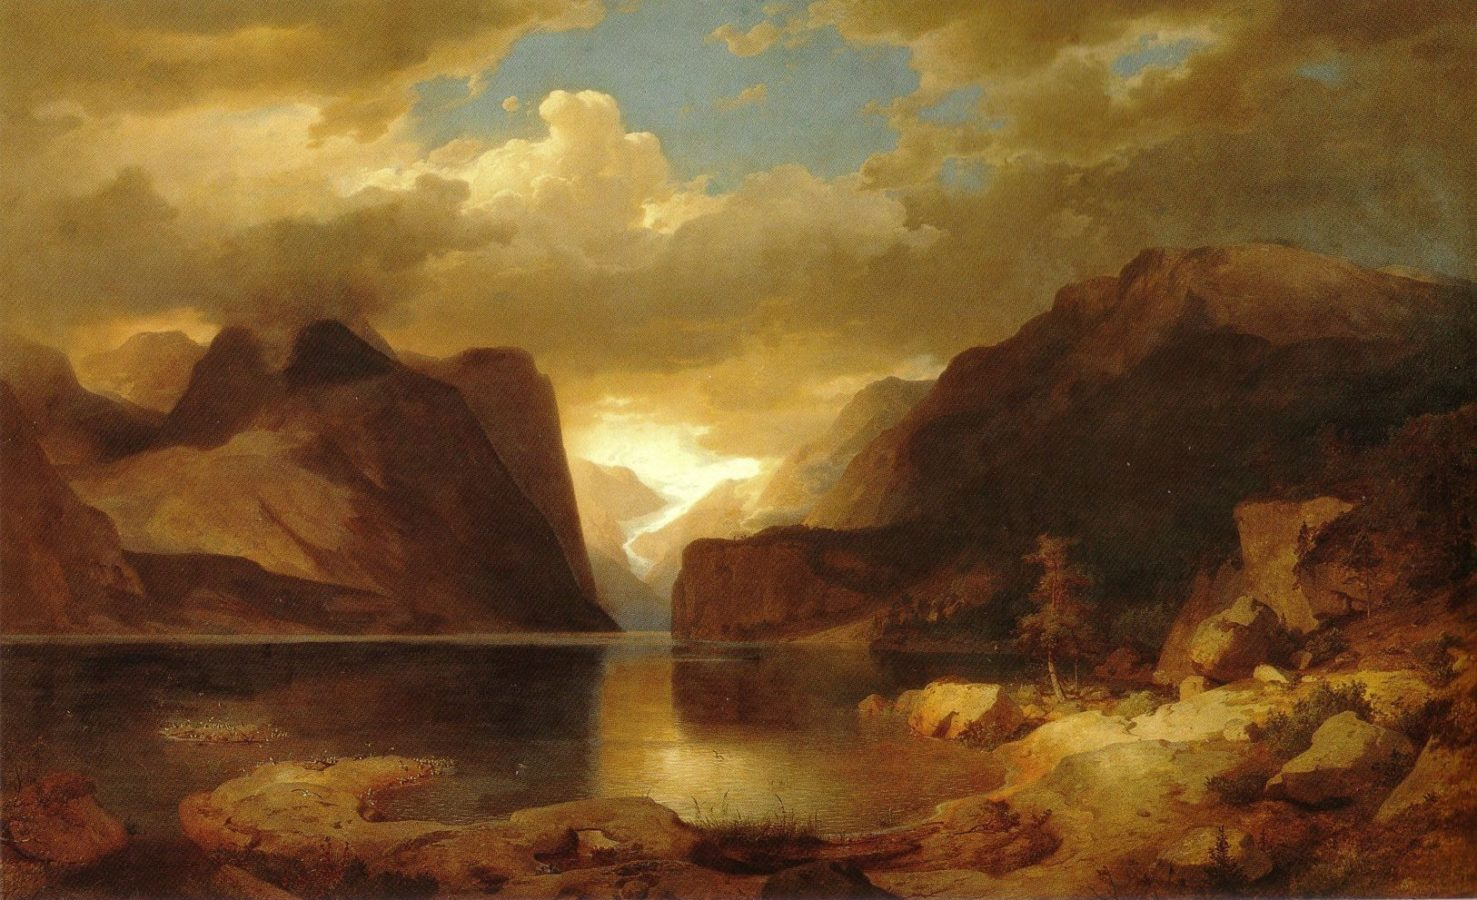 Andreas Achenbach The Hardanger Fjord. 1843 Location unknown 21st Century Grand Tour